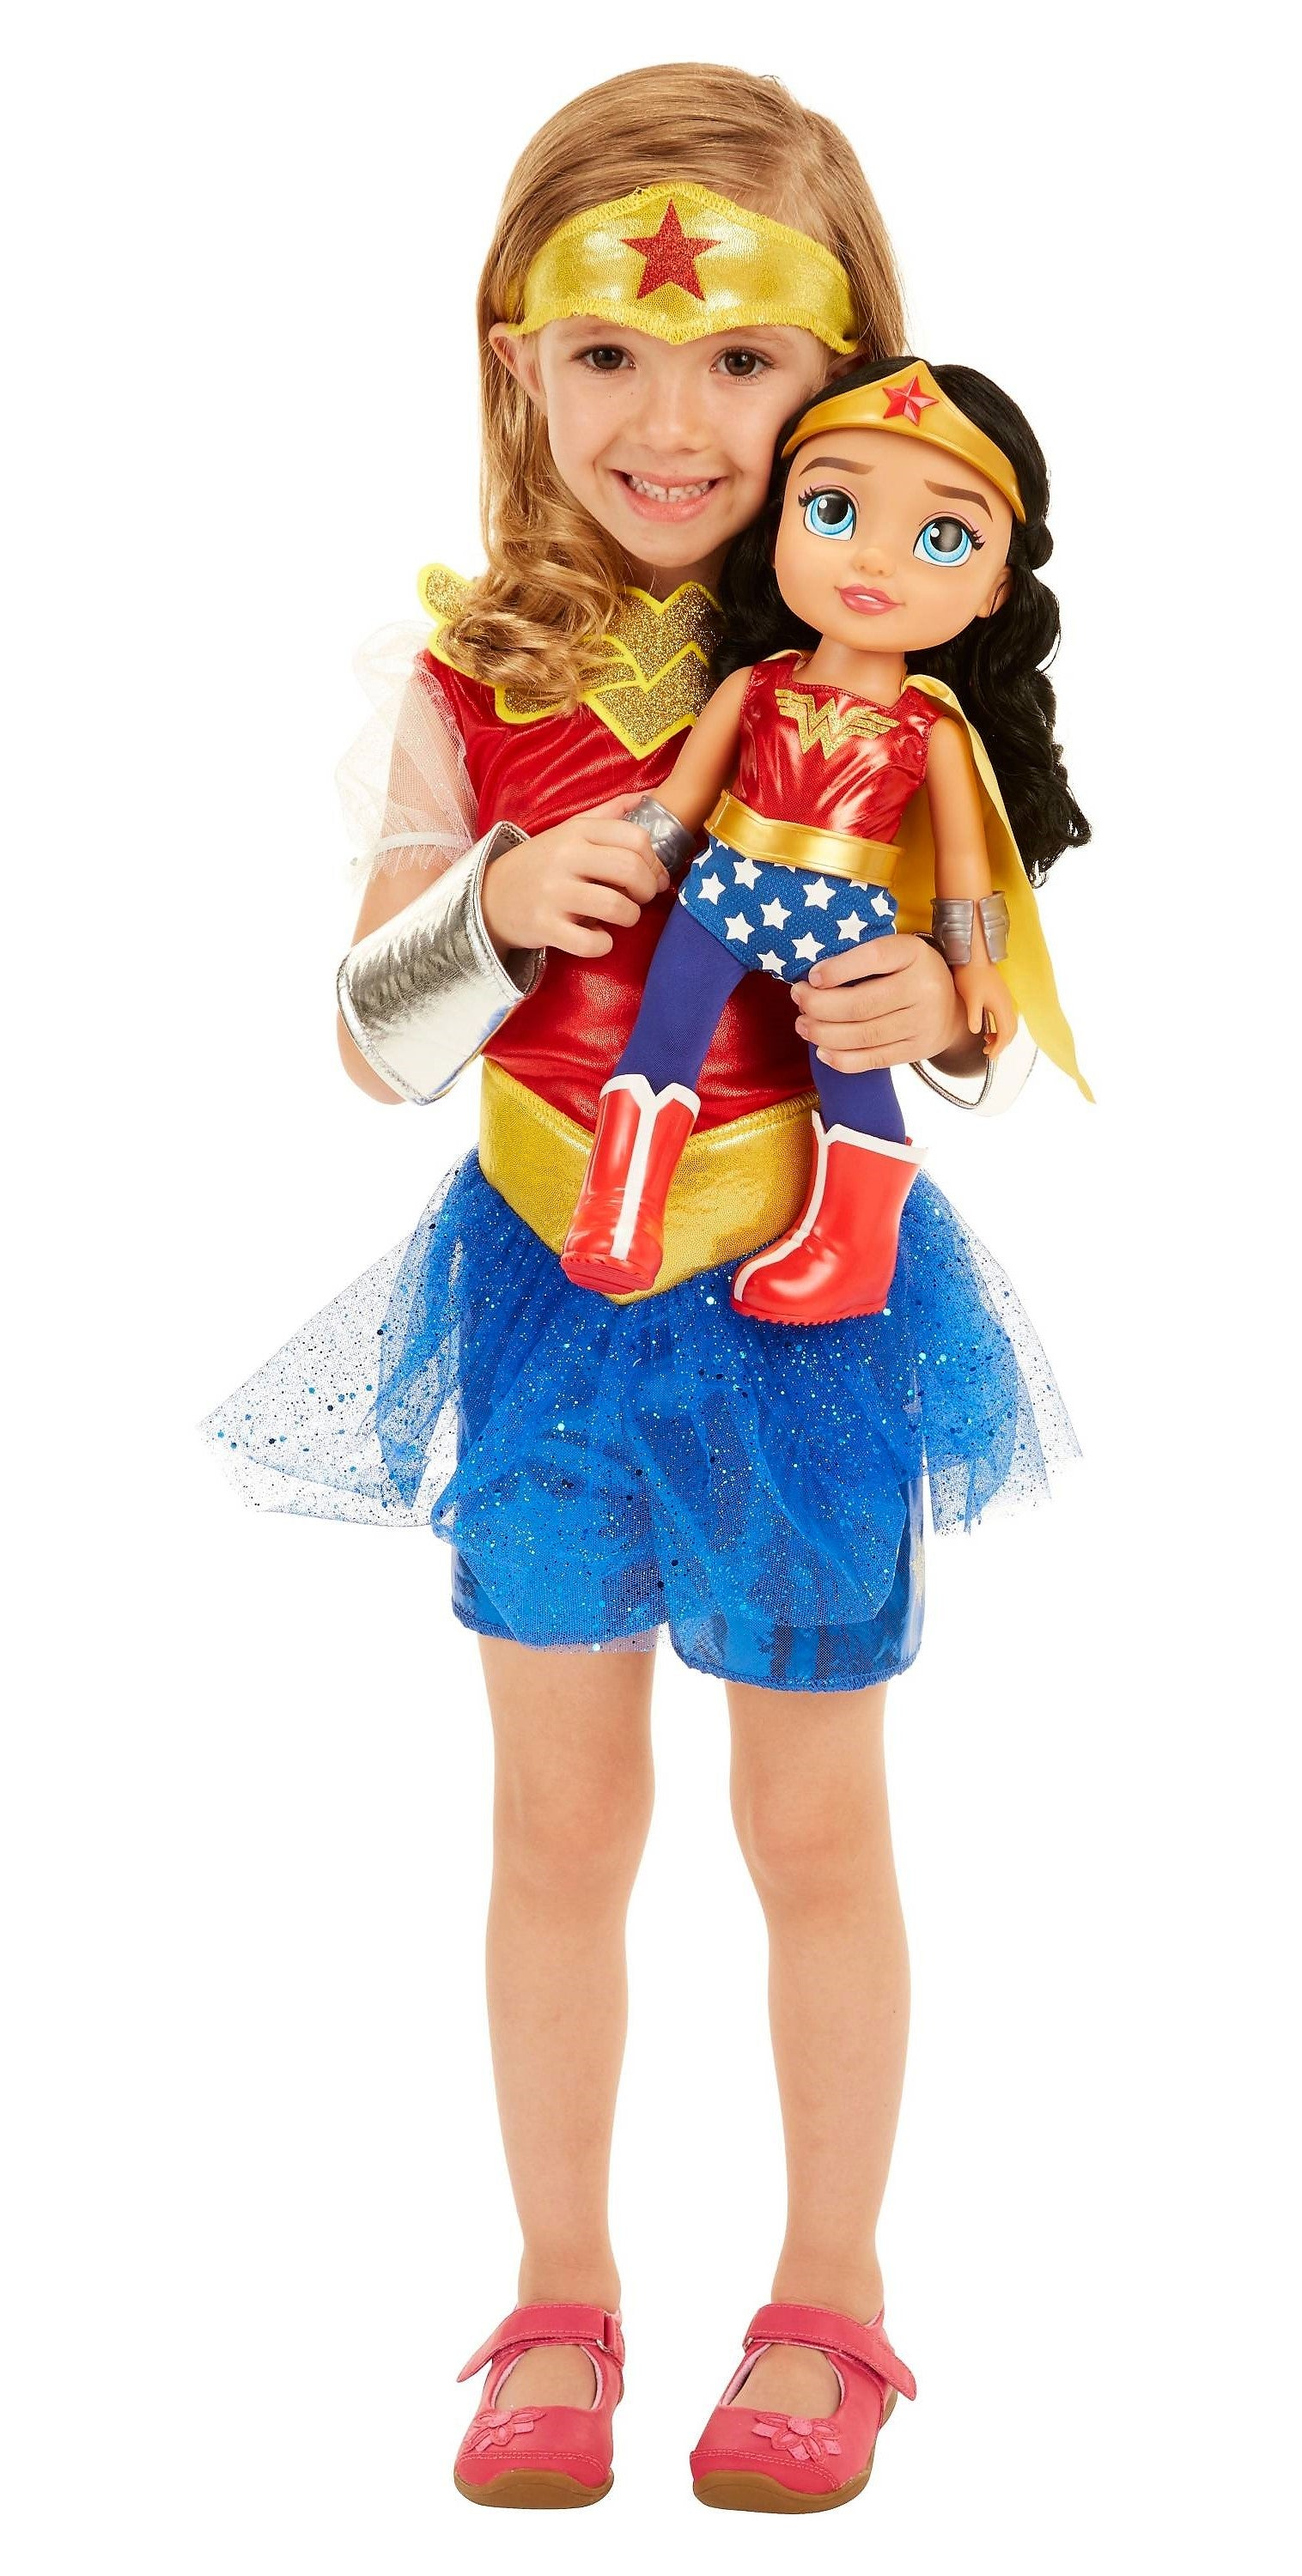 DC Super Hero Girls Wonder Woman Toddler Action Figure